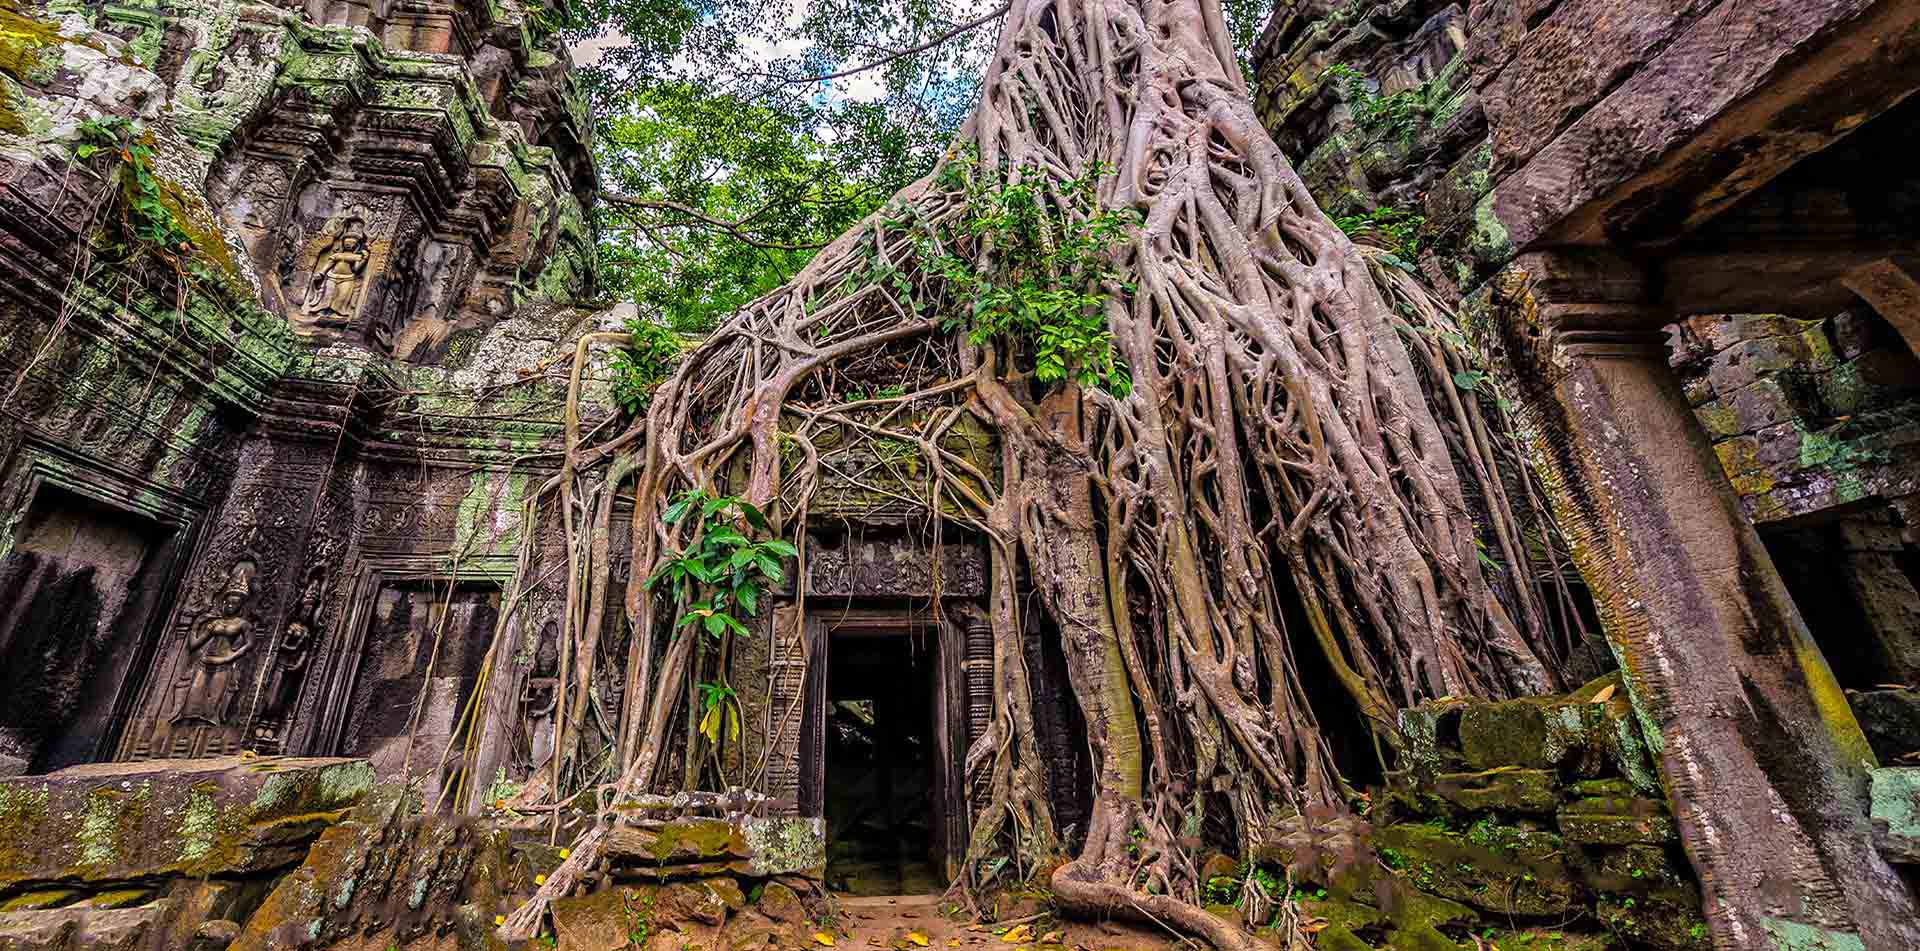 Asia Cambodia Siem Reap Angkor Wat Ta Prohm temple overgrown with banyan tree - luxury vacation destinations